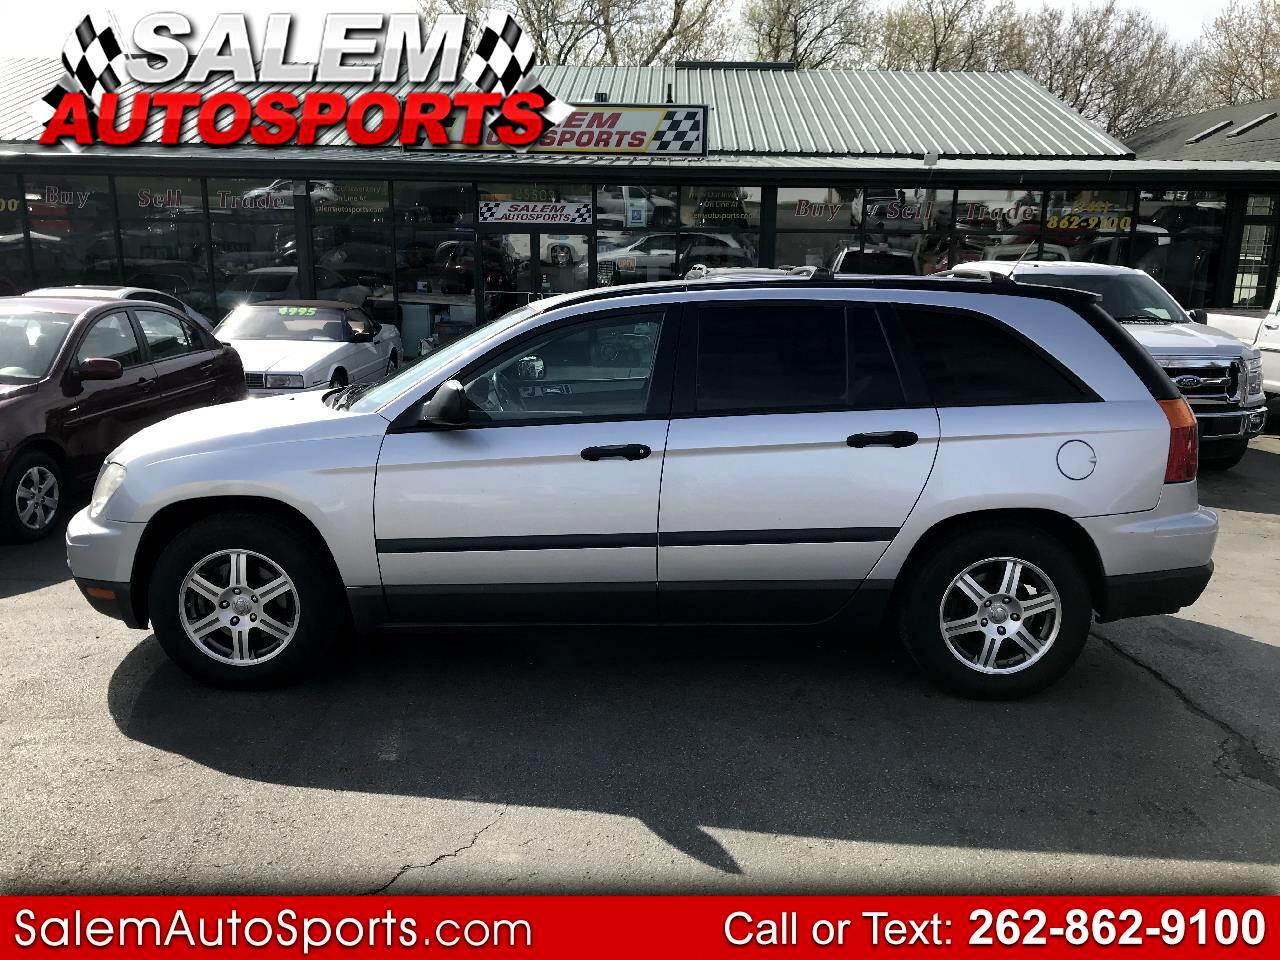 Chrysler Pacifica 4dr Wgn FWD 2007